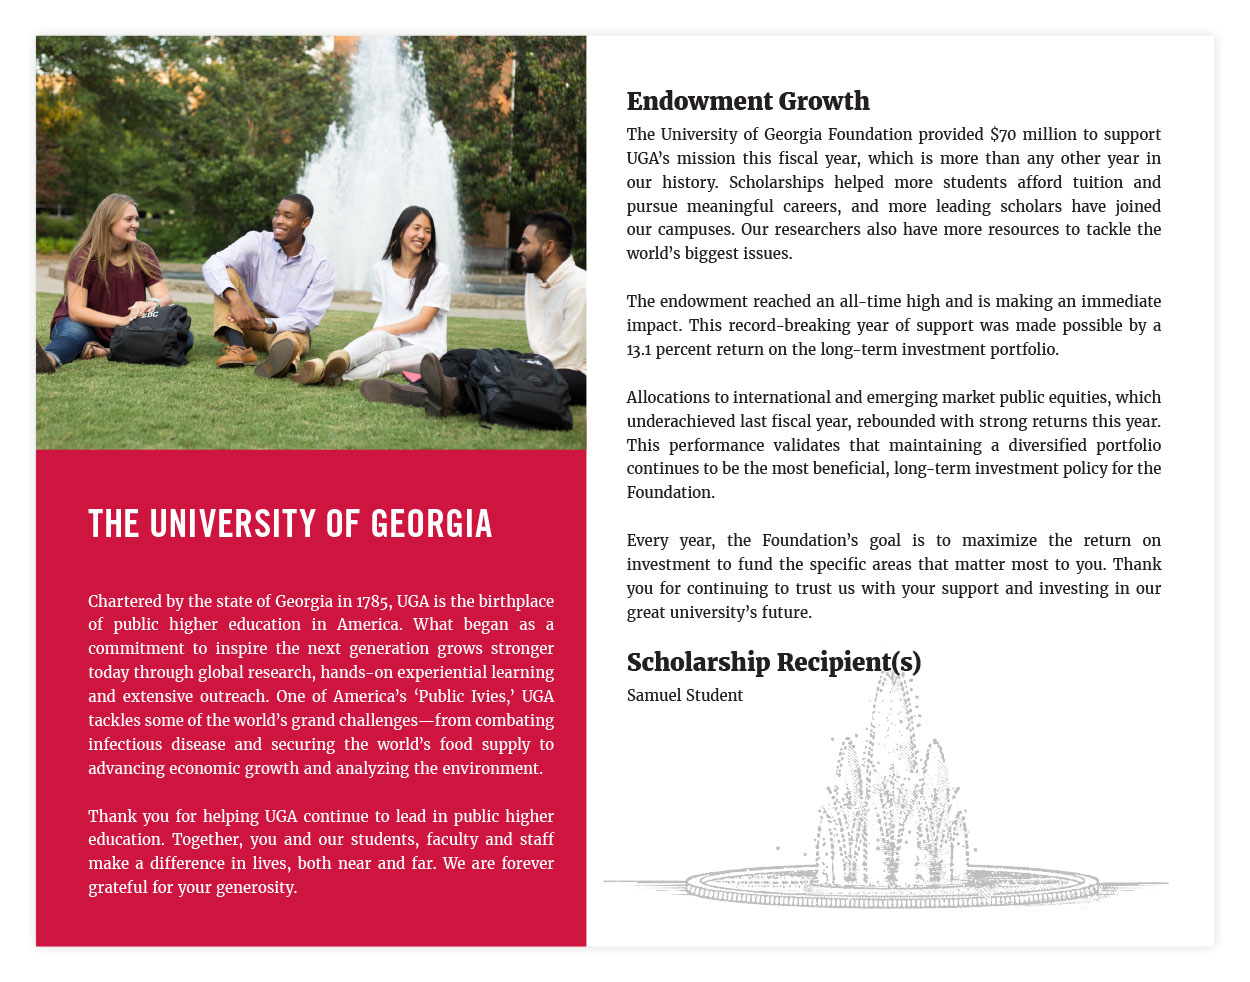 Sample Endowment Brochure Right Panel